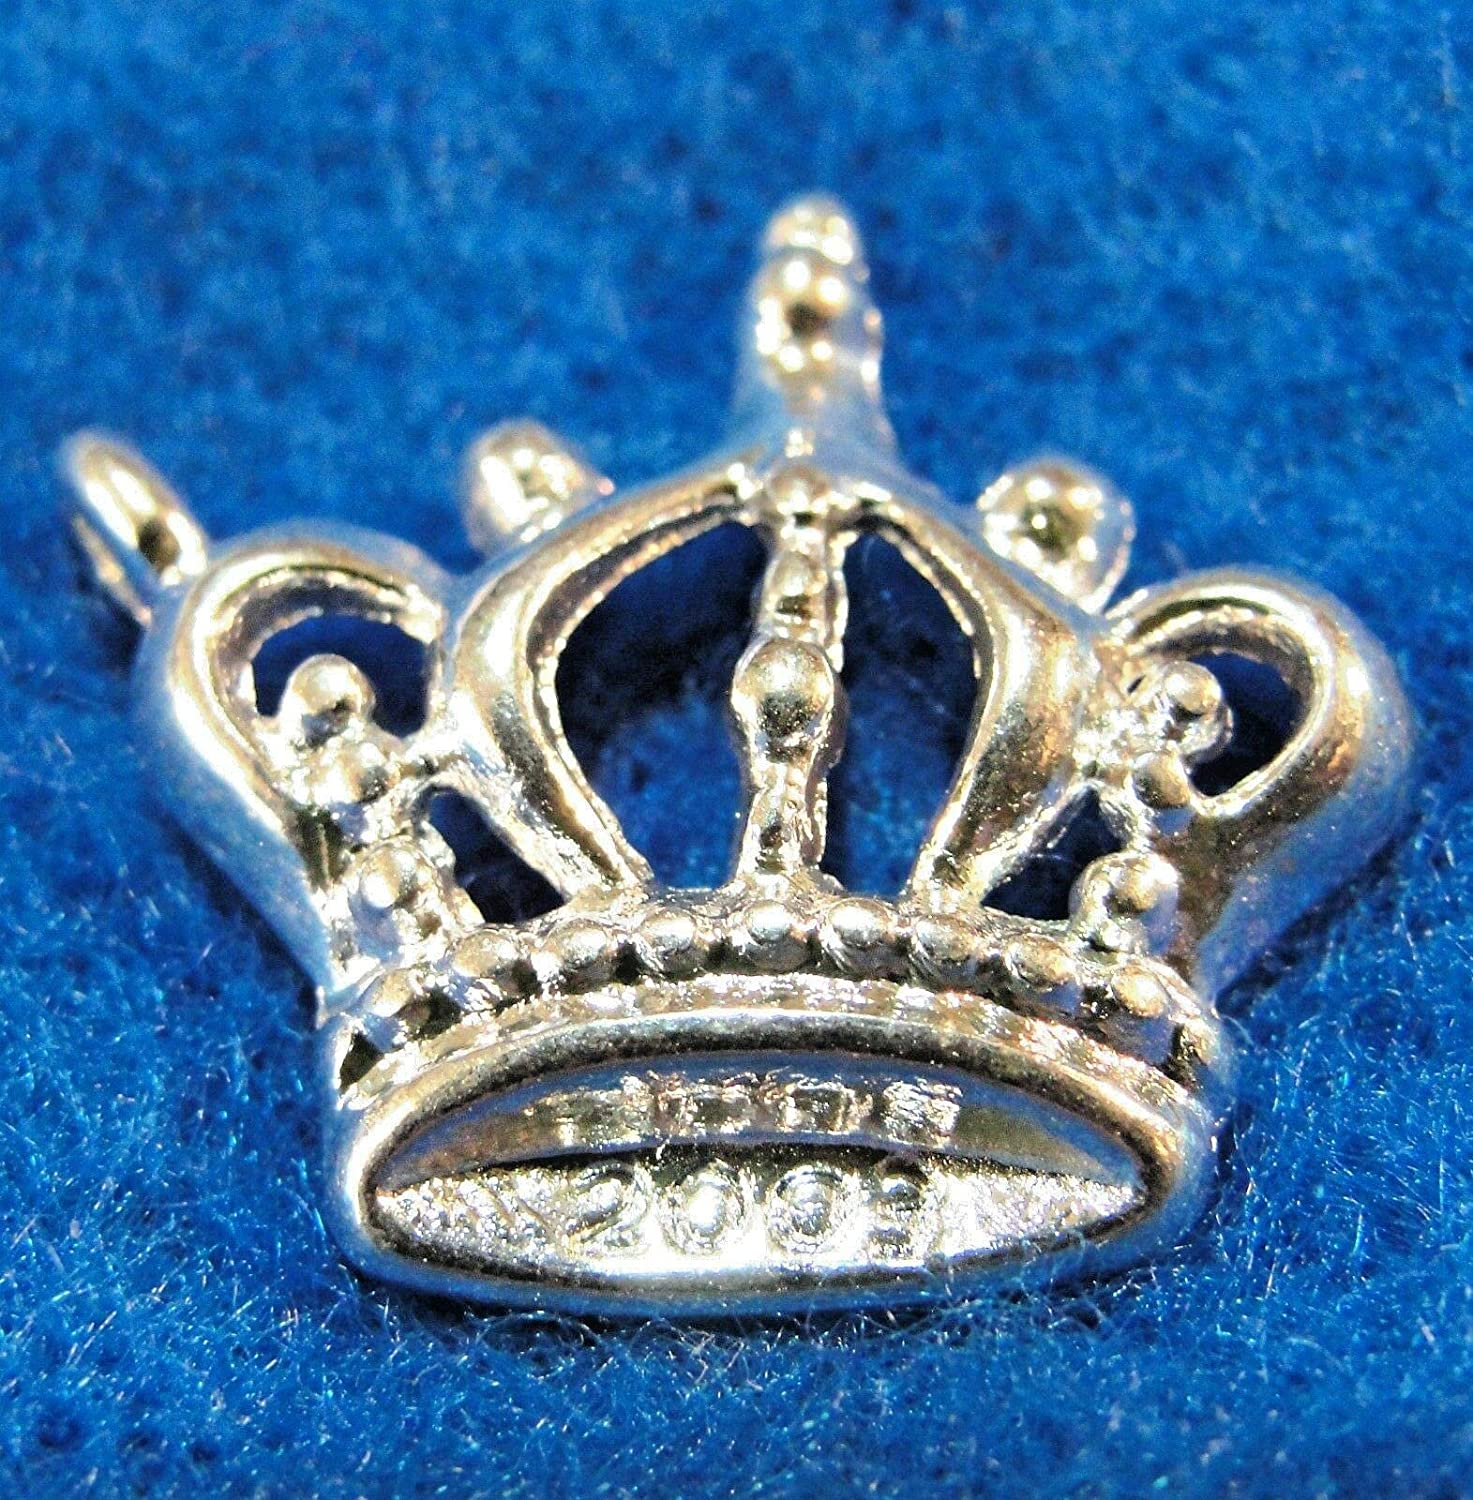 50Pcs. WHOLESALE Silver-Plated Kings Max 80% OFF All stores are sold Charms Pendants Tibet CROWN